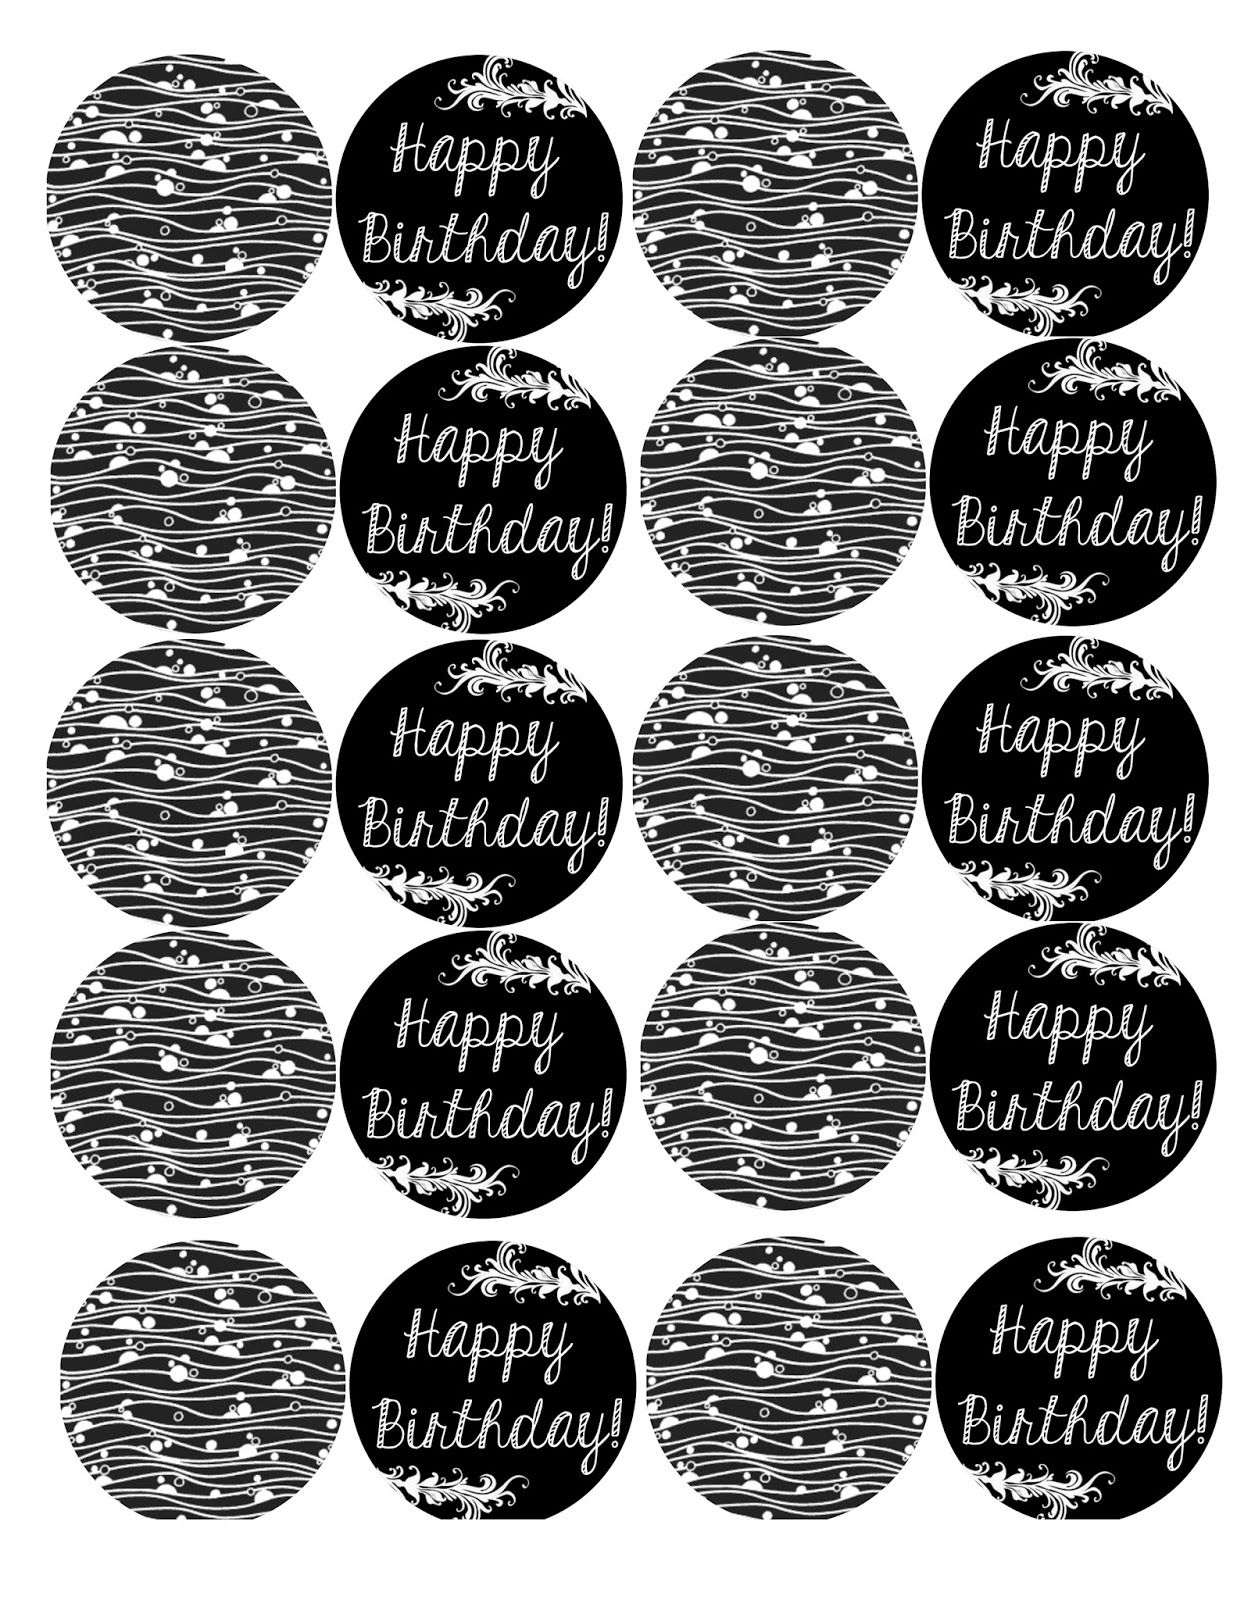 Happy Birthday cupcake toppers free printable | Made by ...